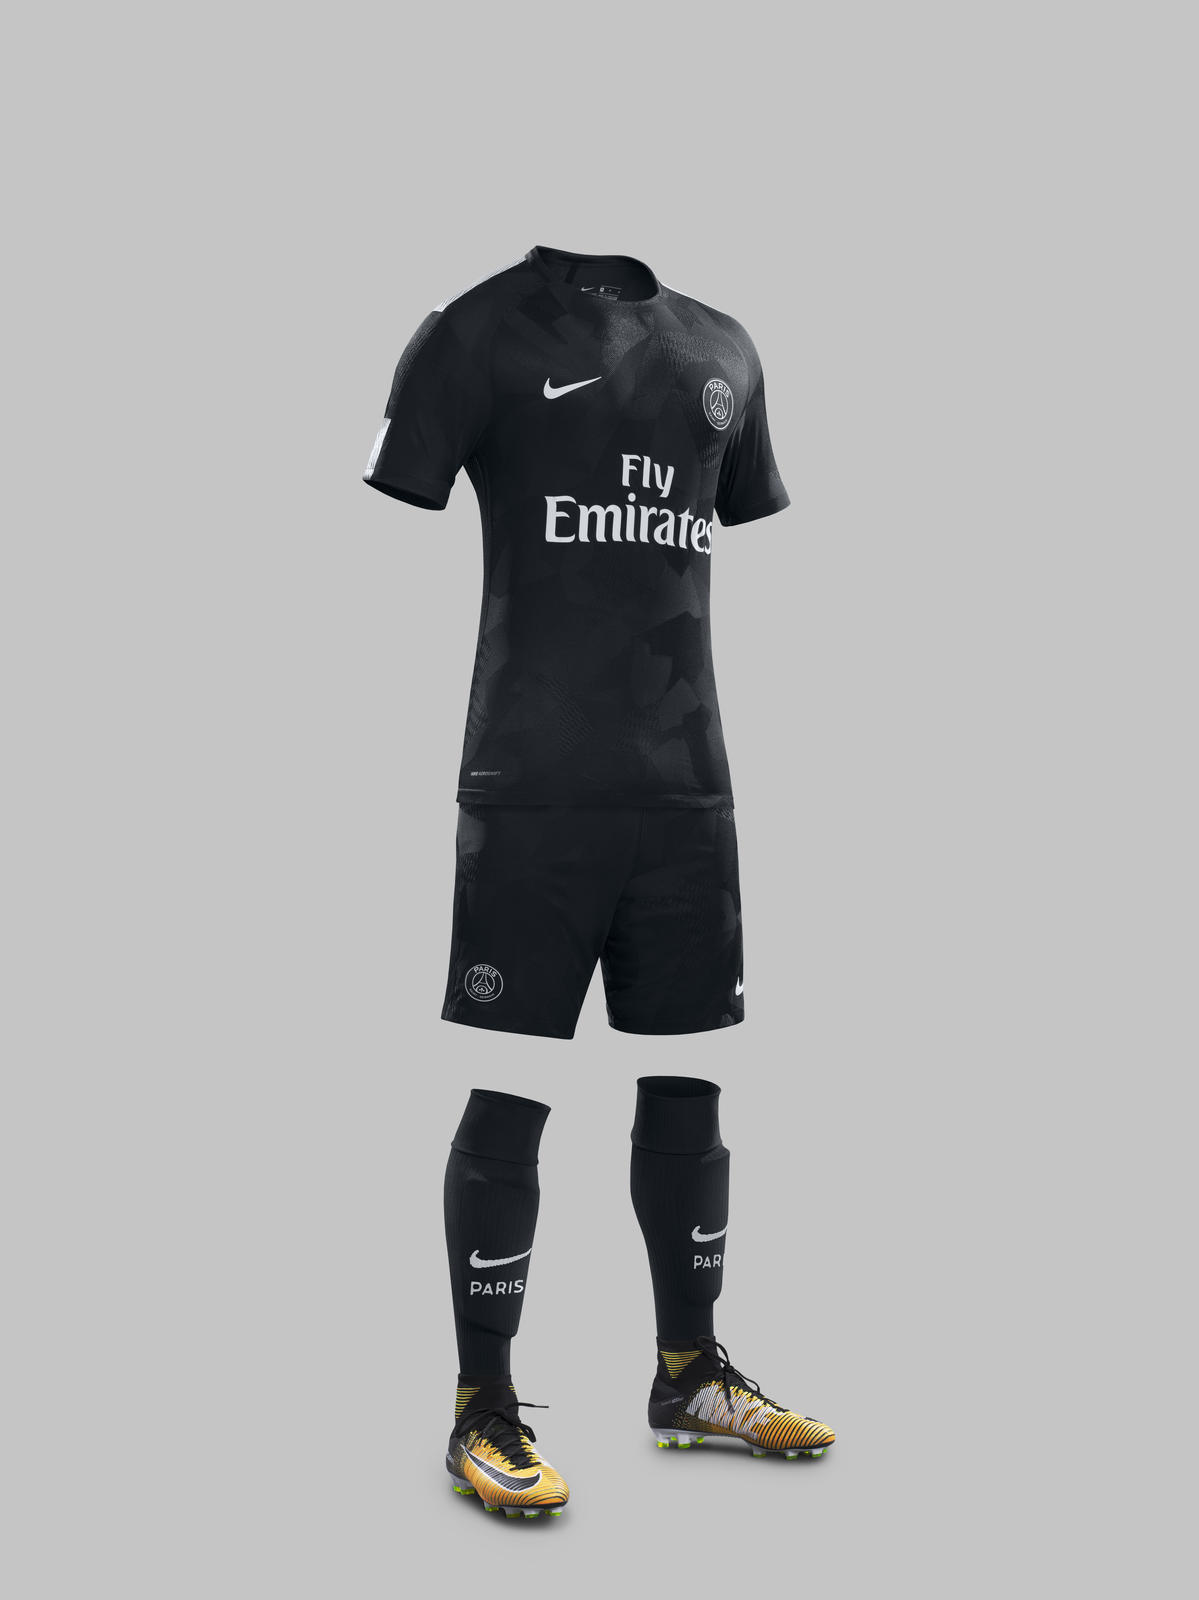 size 40 e7c68 f2187 Neymar Jr. Reveals Paris Saint Germain Third KIT 2017-18 ...